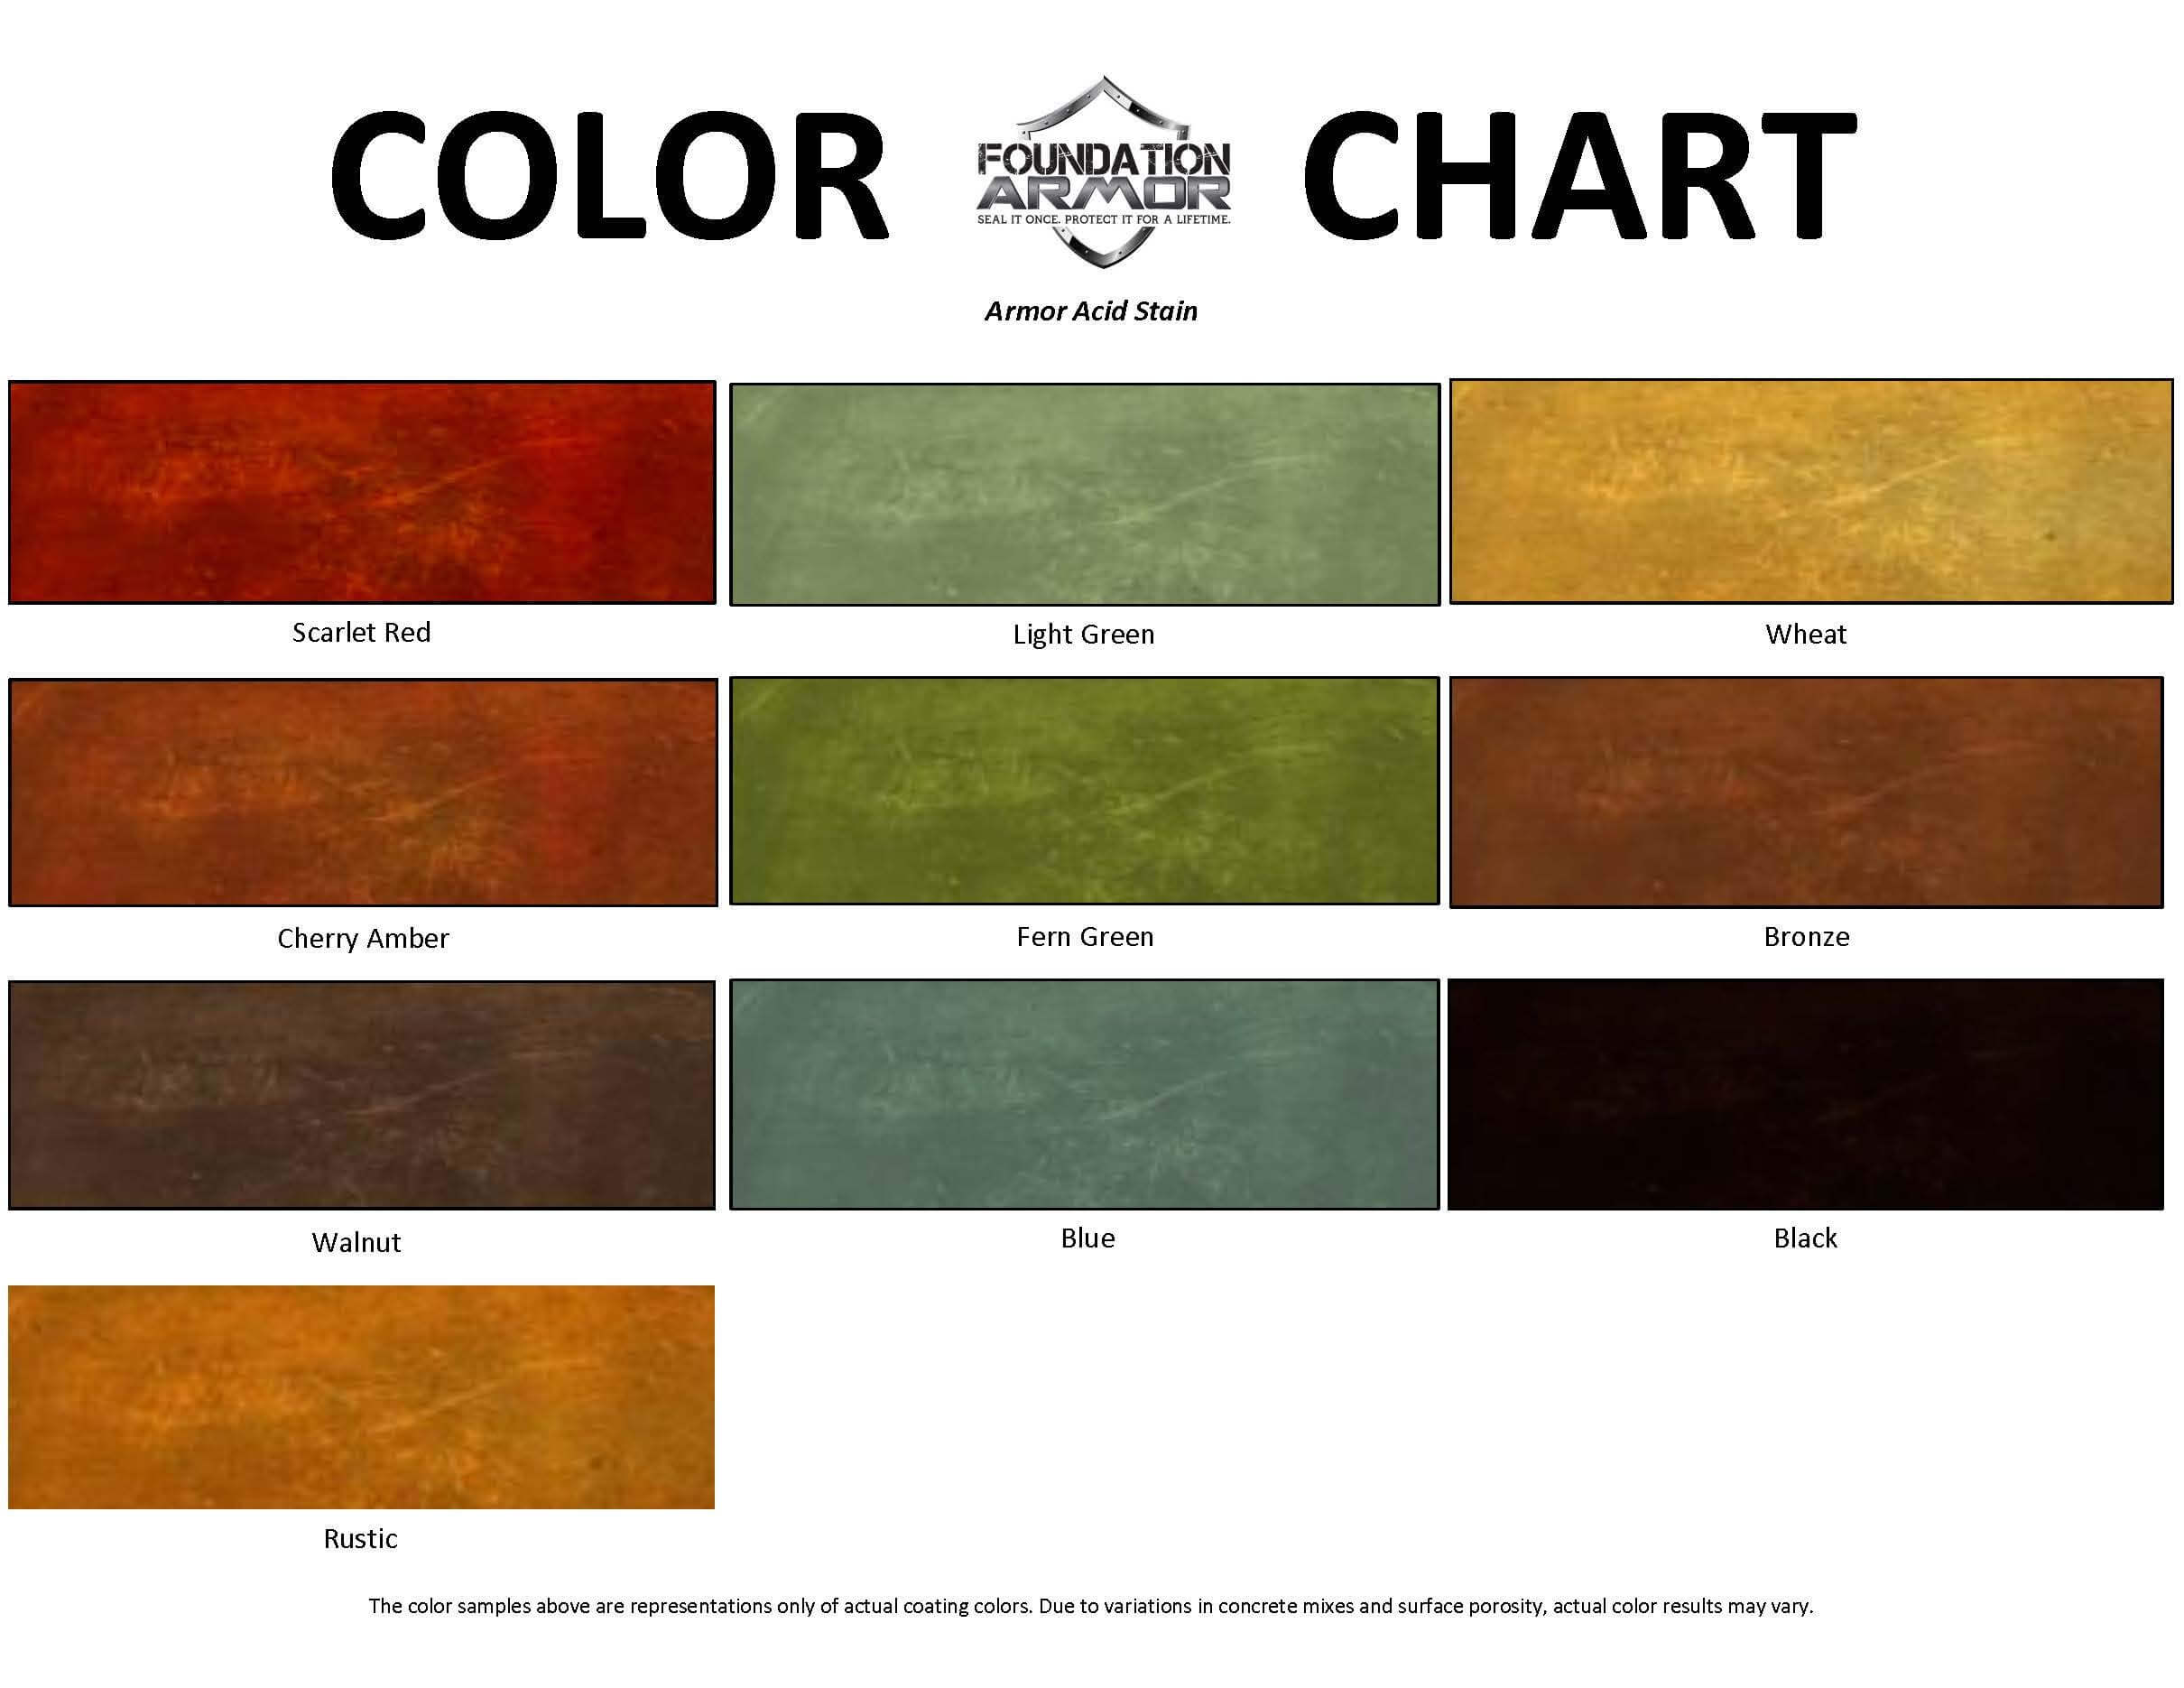 Concrete acid stain for acid stained concrete armor acid stain color chart nvjuhfo Image collections